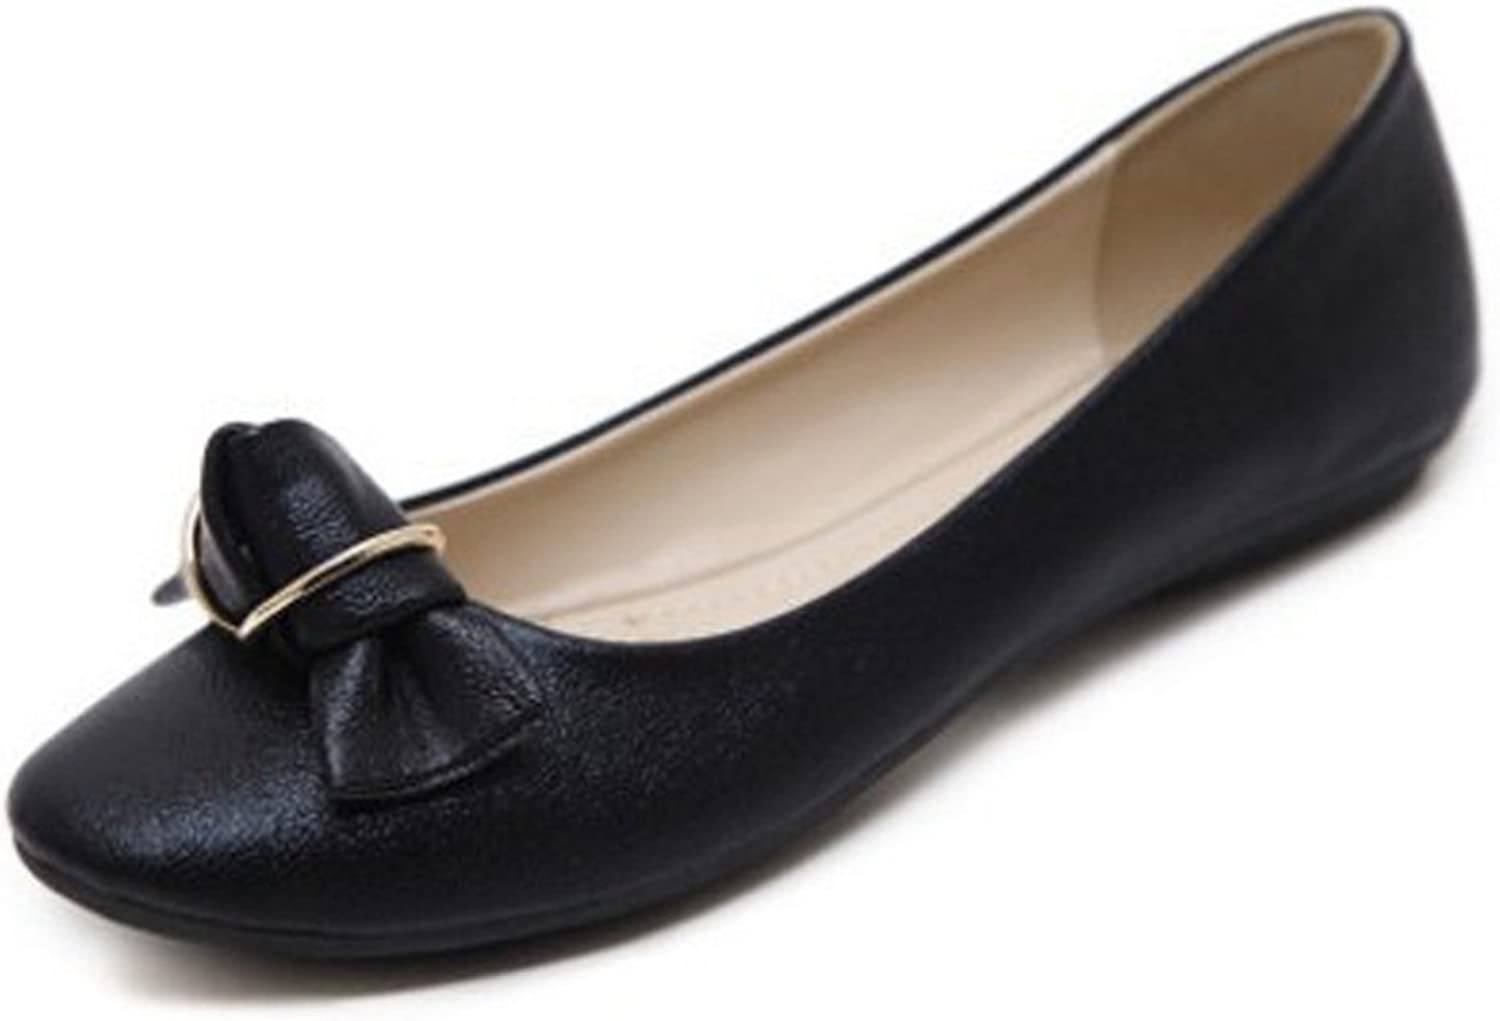 T-JULY Women's Flats shoes Knot Front Comfortable Round Toe Dress Slip On